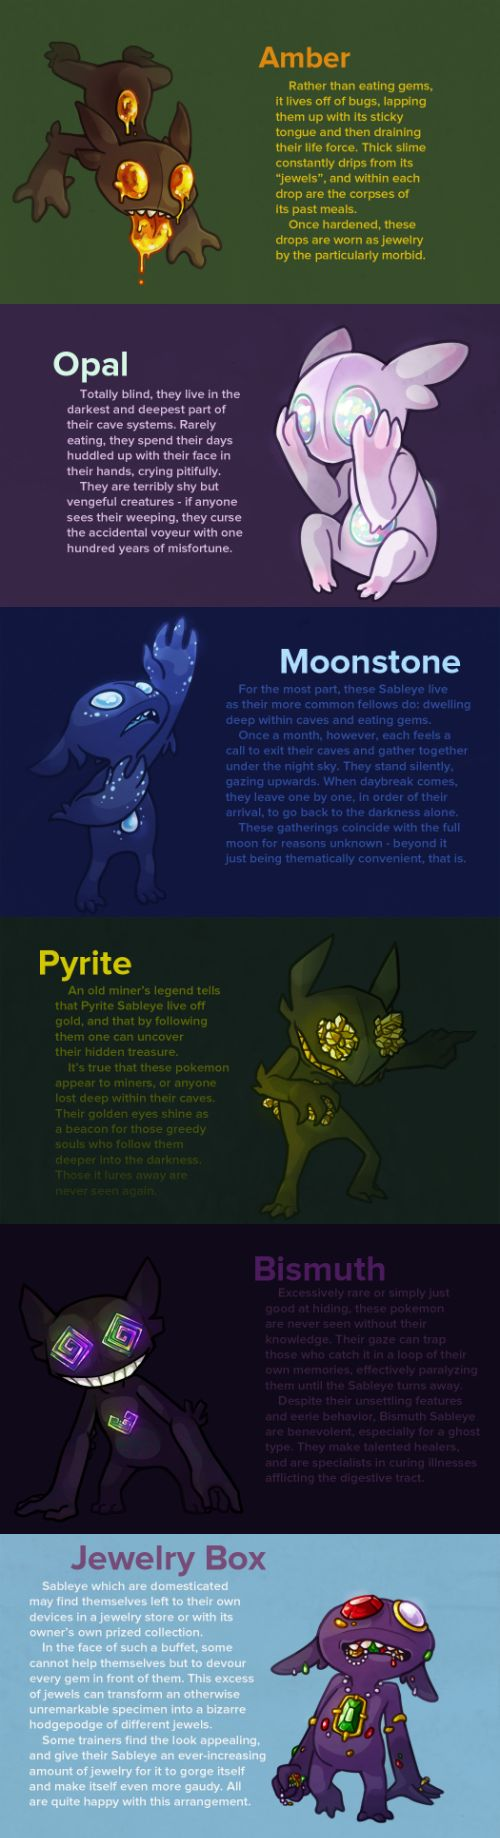 What If Sableye Subspecies Were Based on Different Gems? - The Pyrite one freaks me out, man